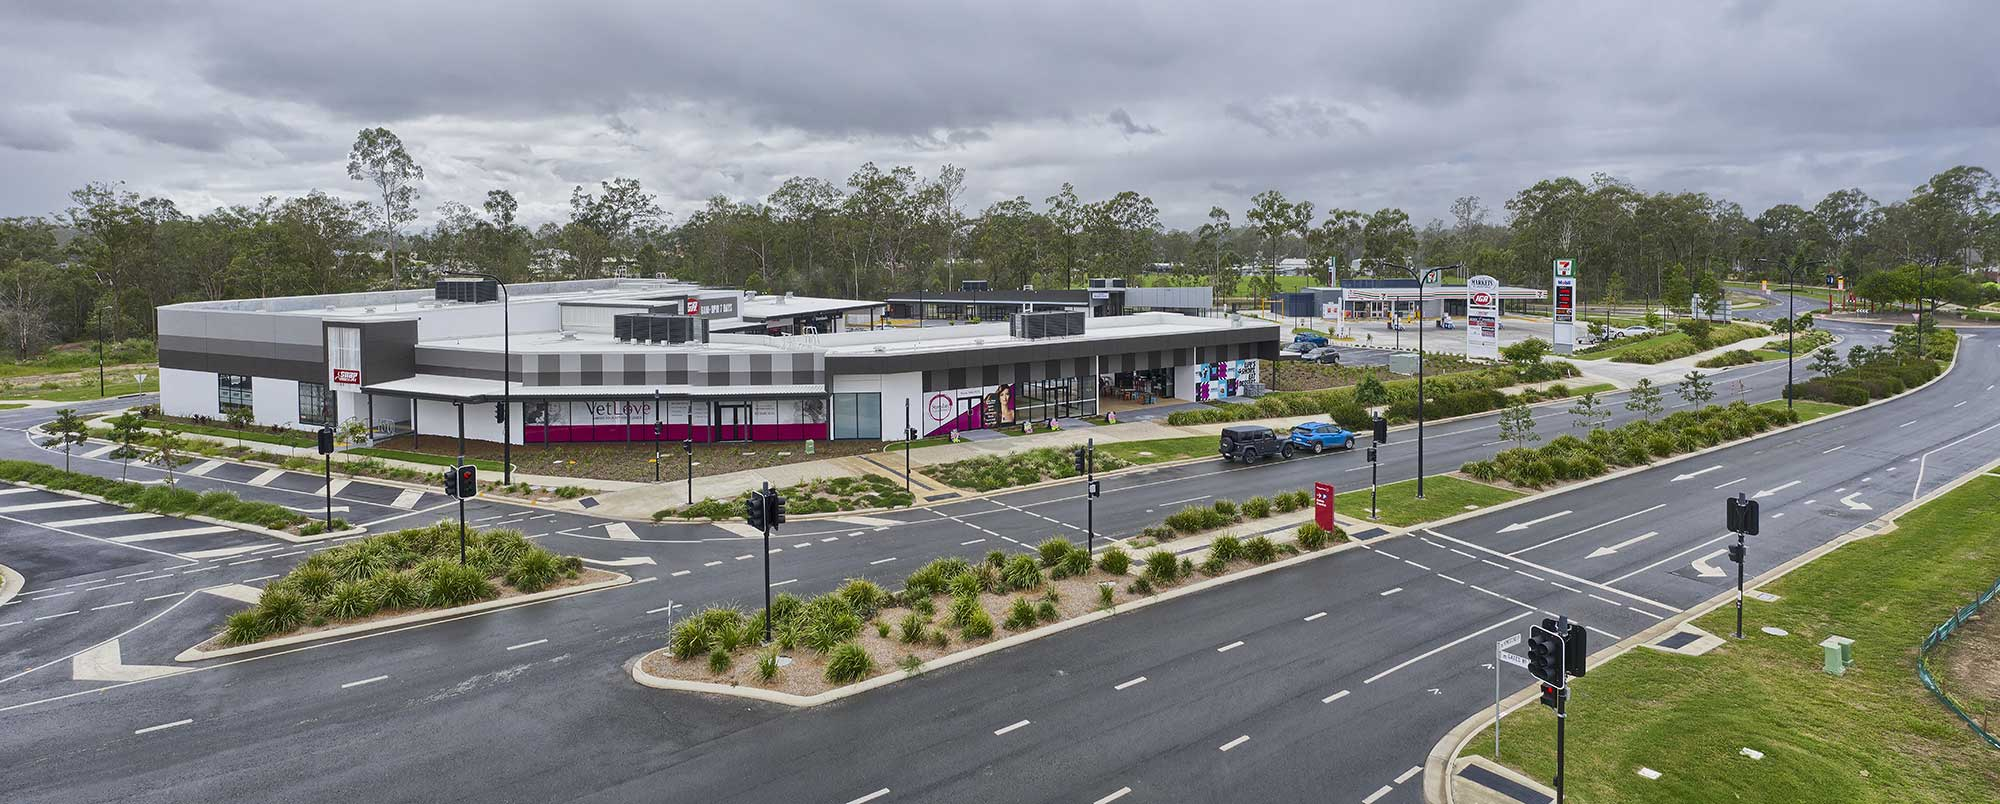 Panorama drone photography captures the street frontage